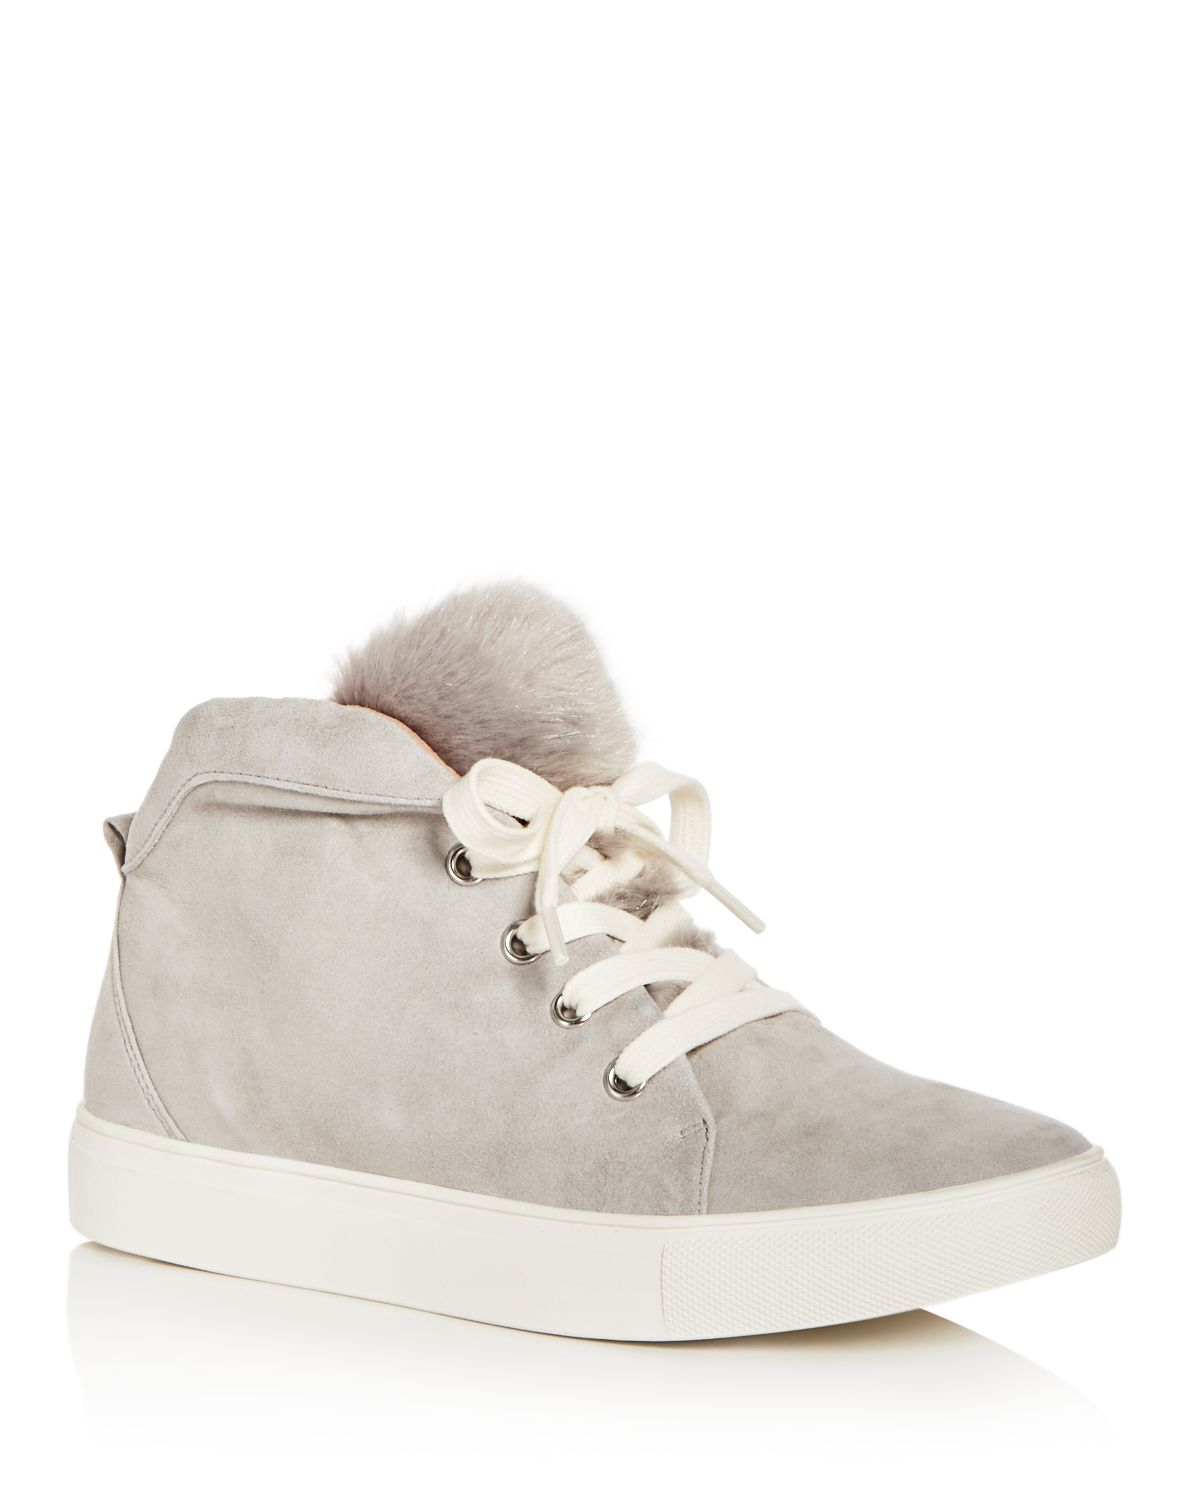 JAGGAR Women's Suede & Faux-Fur Mid Top Sneakers